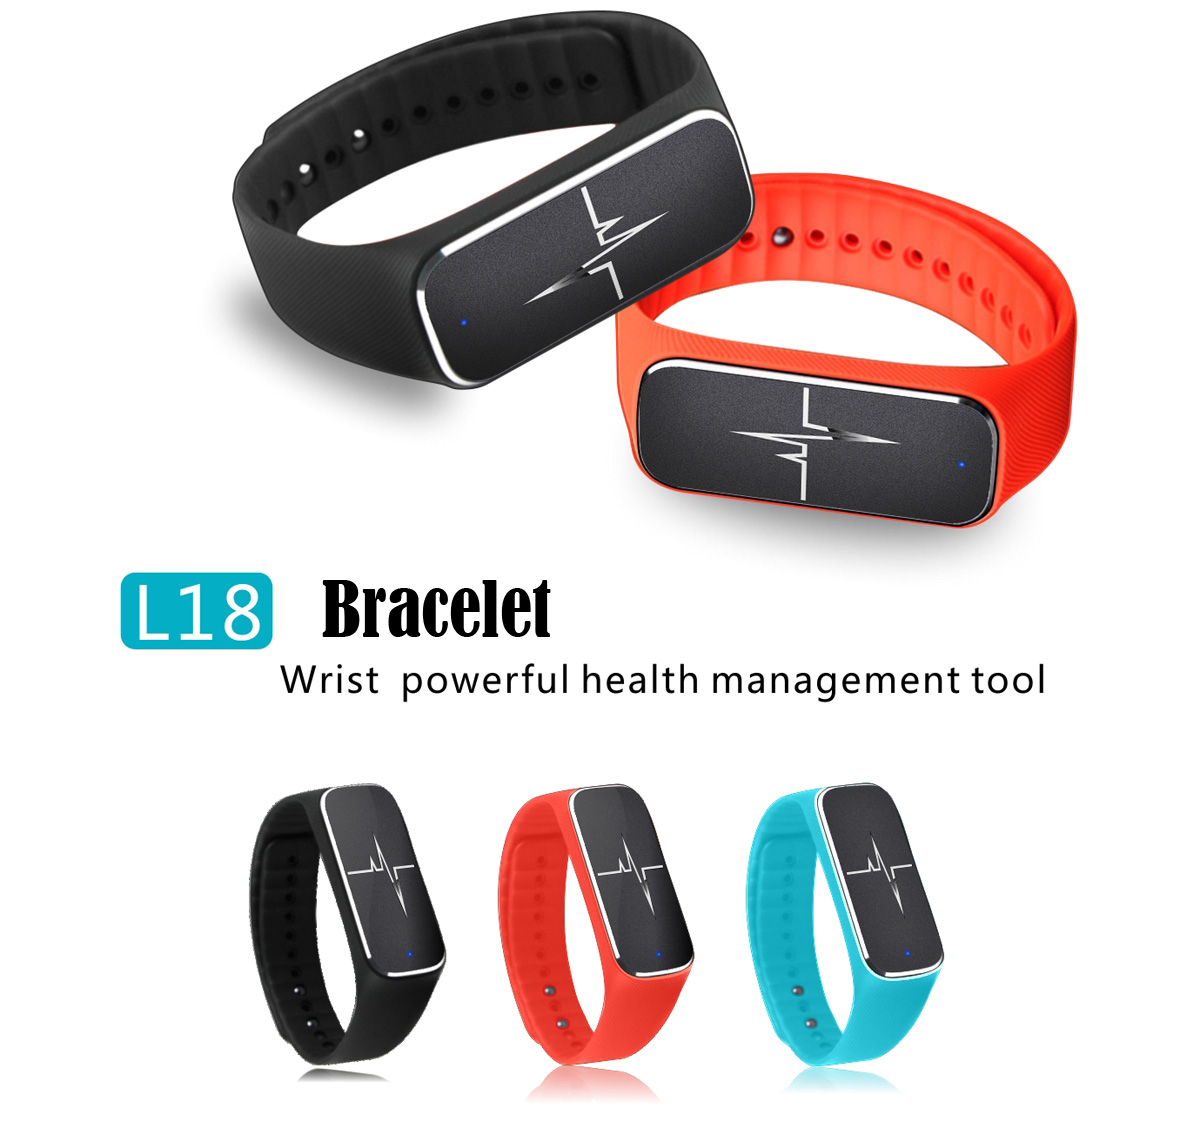 L18 37 Degree Smart  Wristband Fitness  Bluetooth